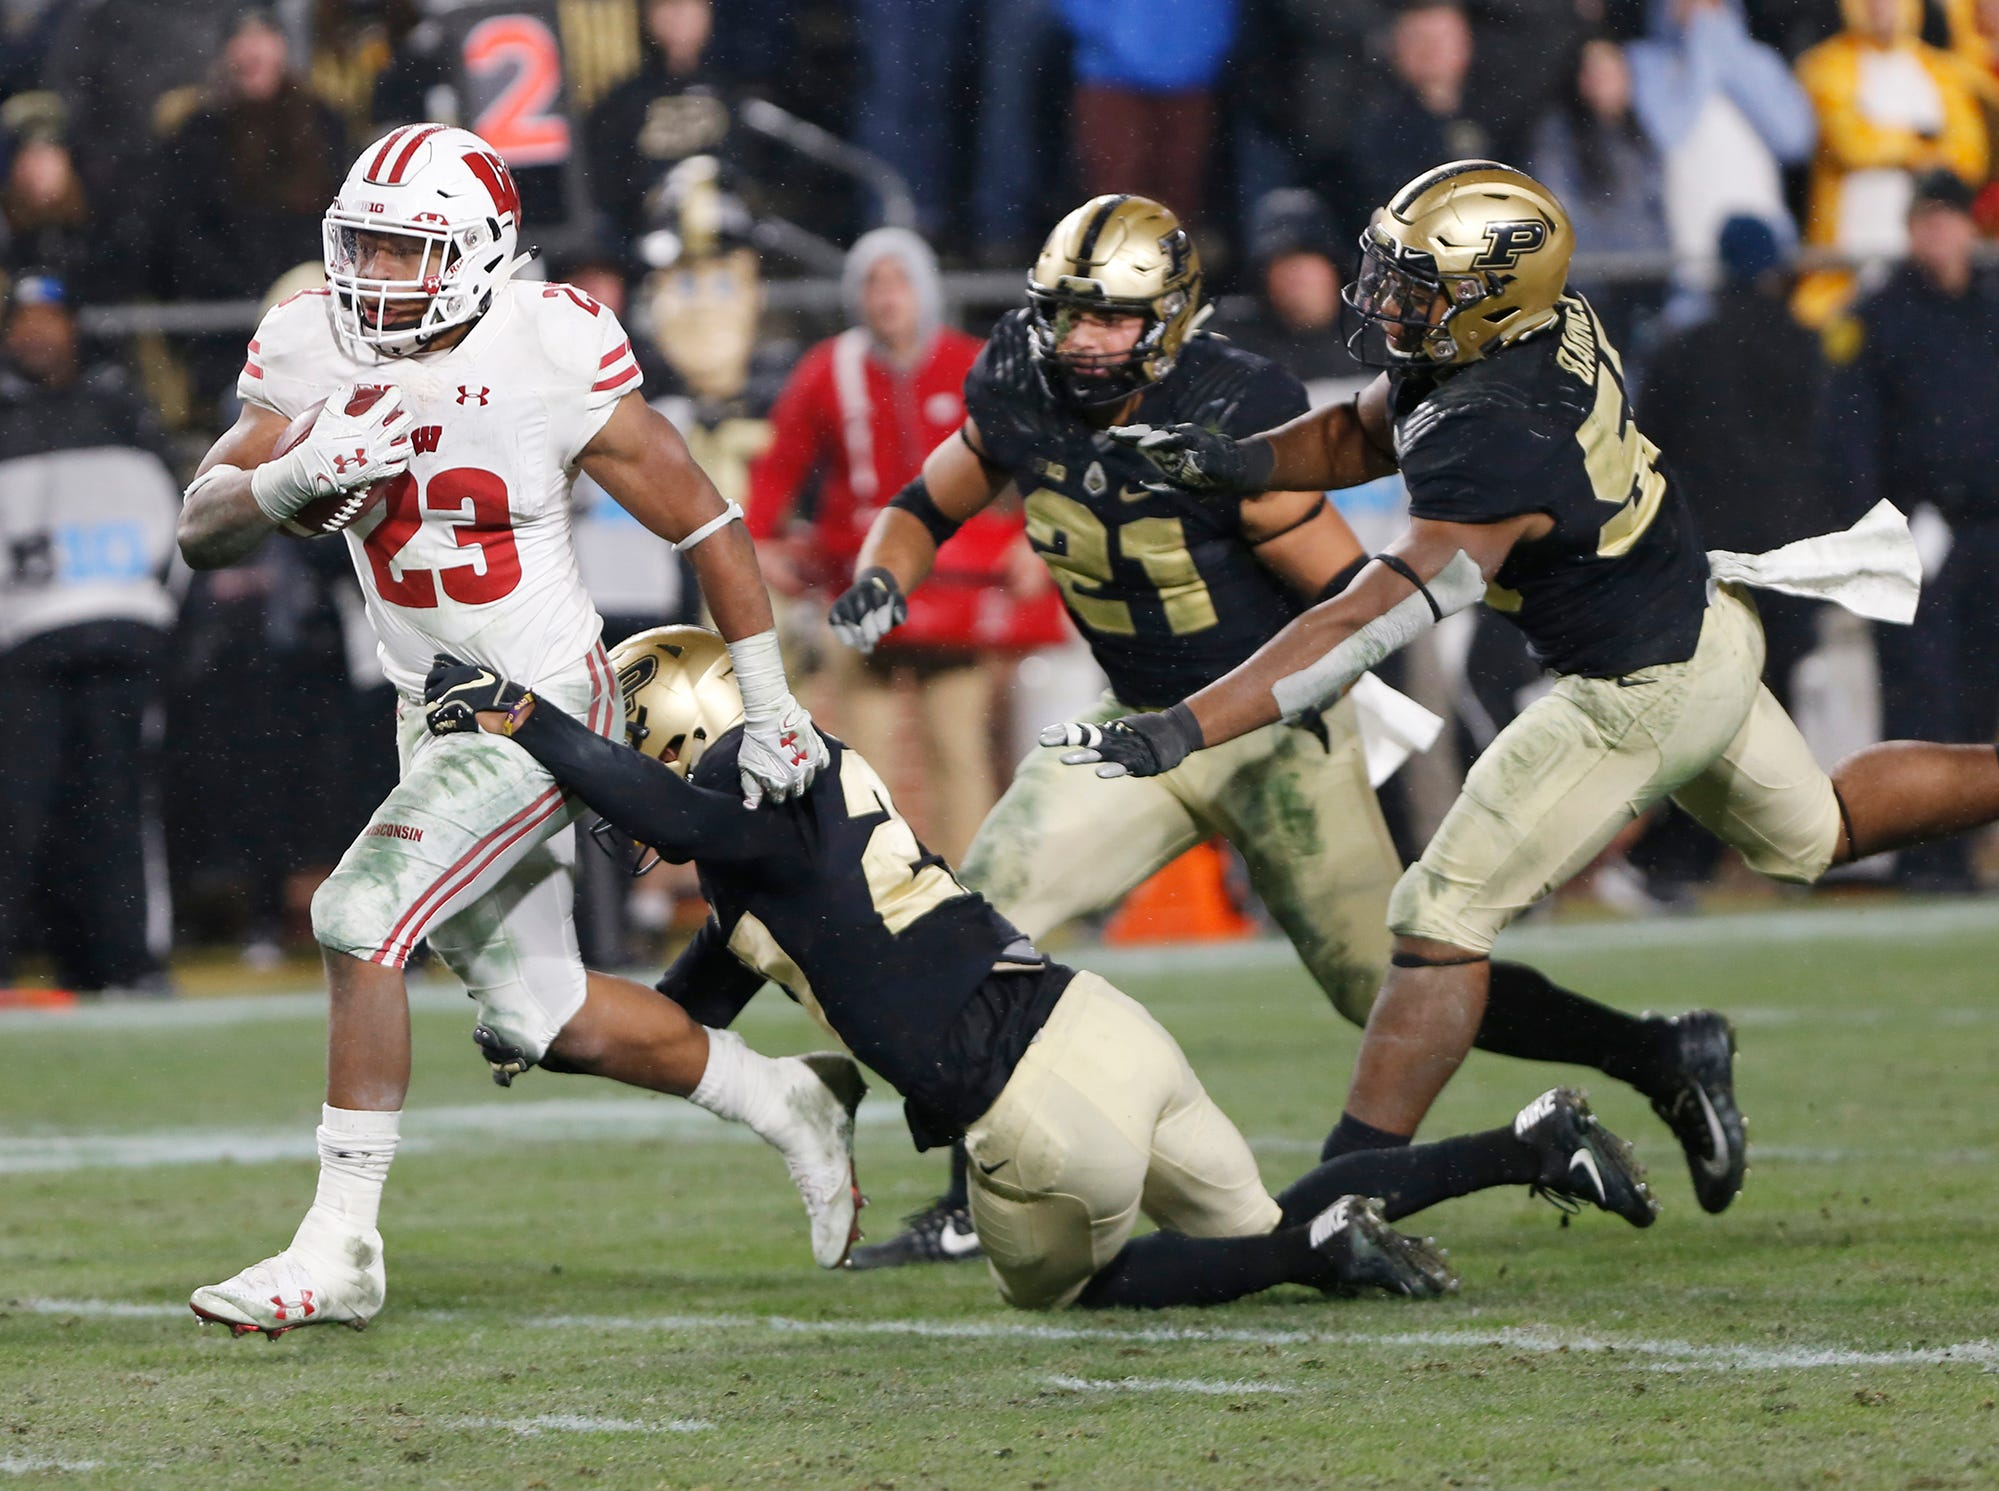 Jonathan Taylor of Wisconsin slips through the grasp of Navon Mosley of Purdue as he rushes for the winning touchdown in the third overtime period Saturday, November 17, 2018, at Ross-Ade Stadium. Purdue fell to Wisconsin 47-44 3OT.